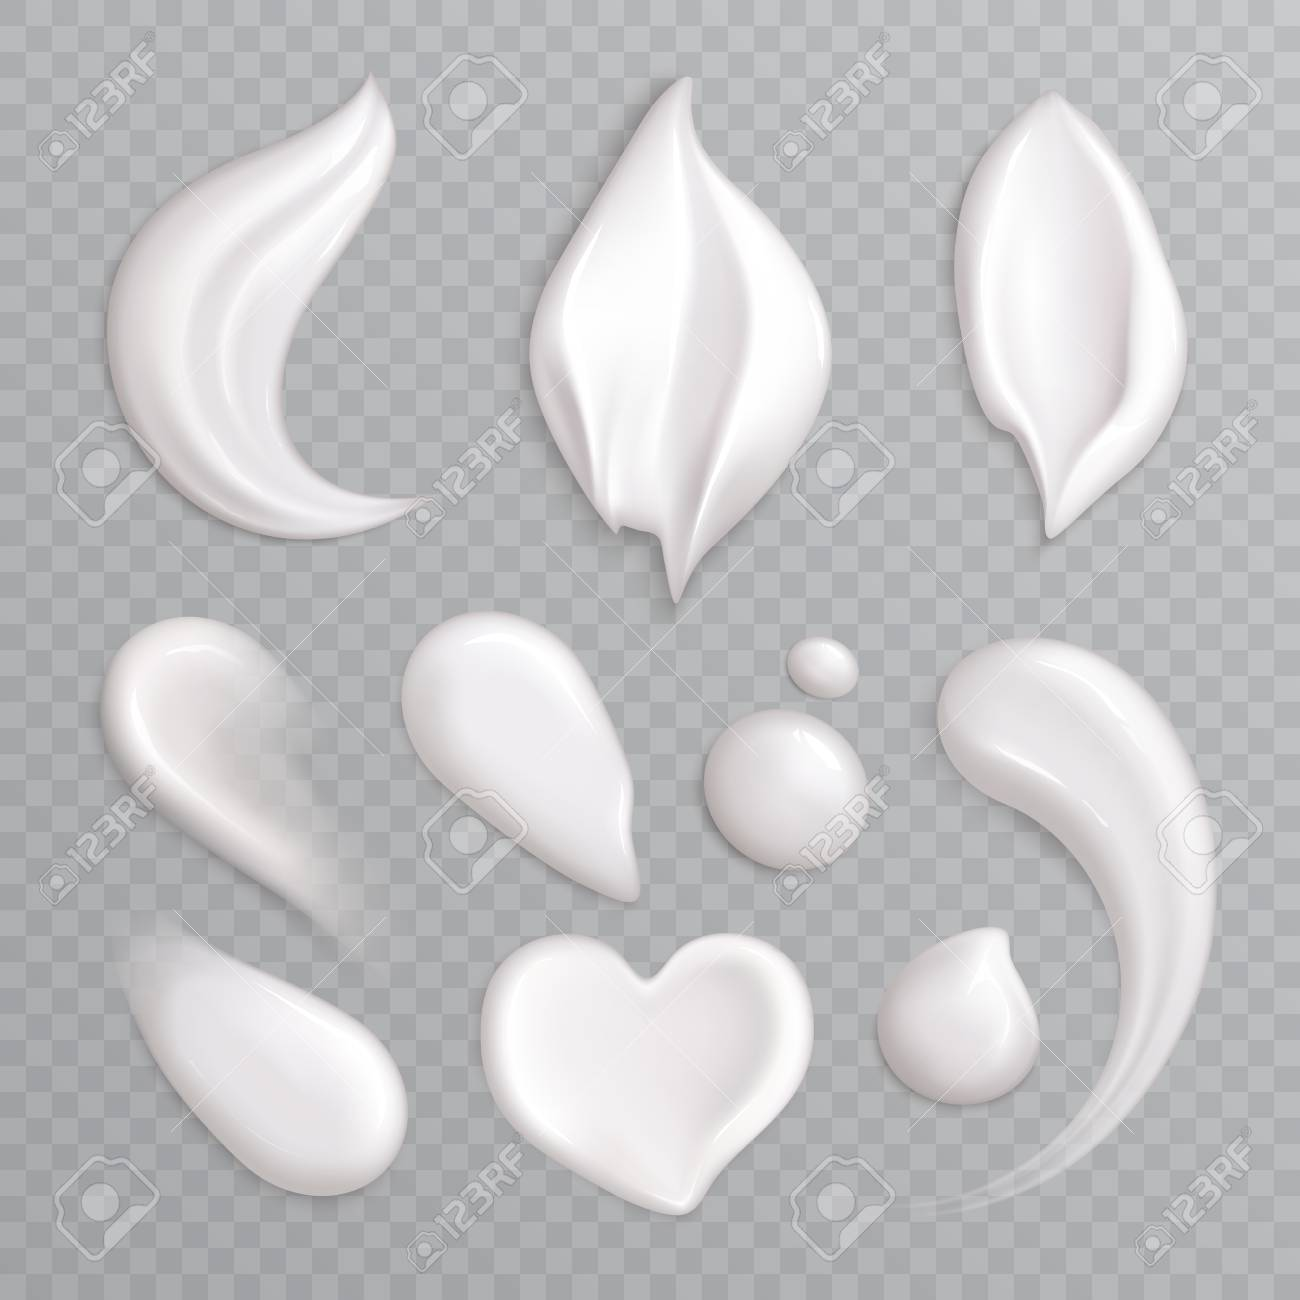 Cosmetic cream smears realistic icon set with white isolated elements different shapes and sizes vector illustration - 120960263